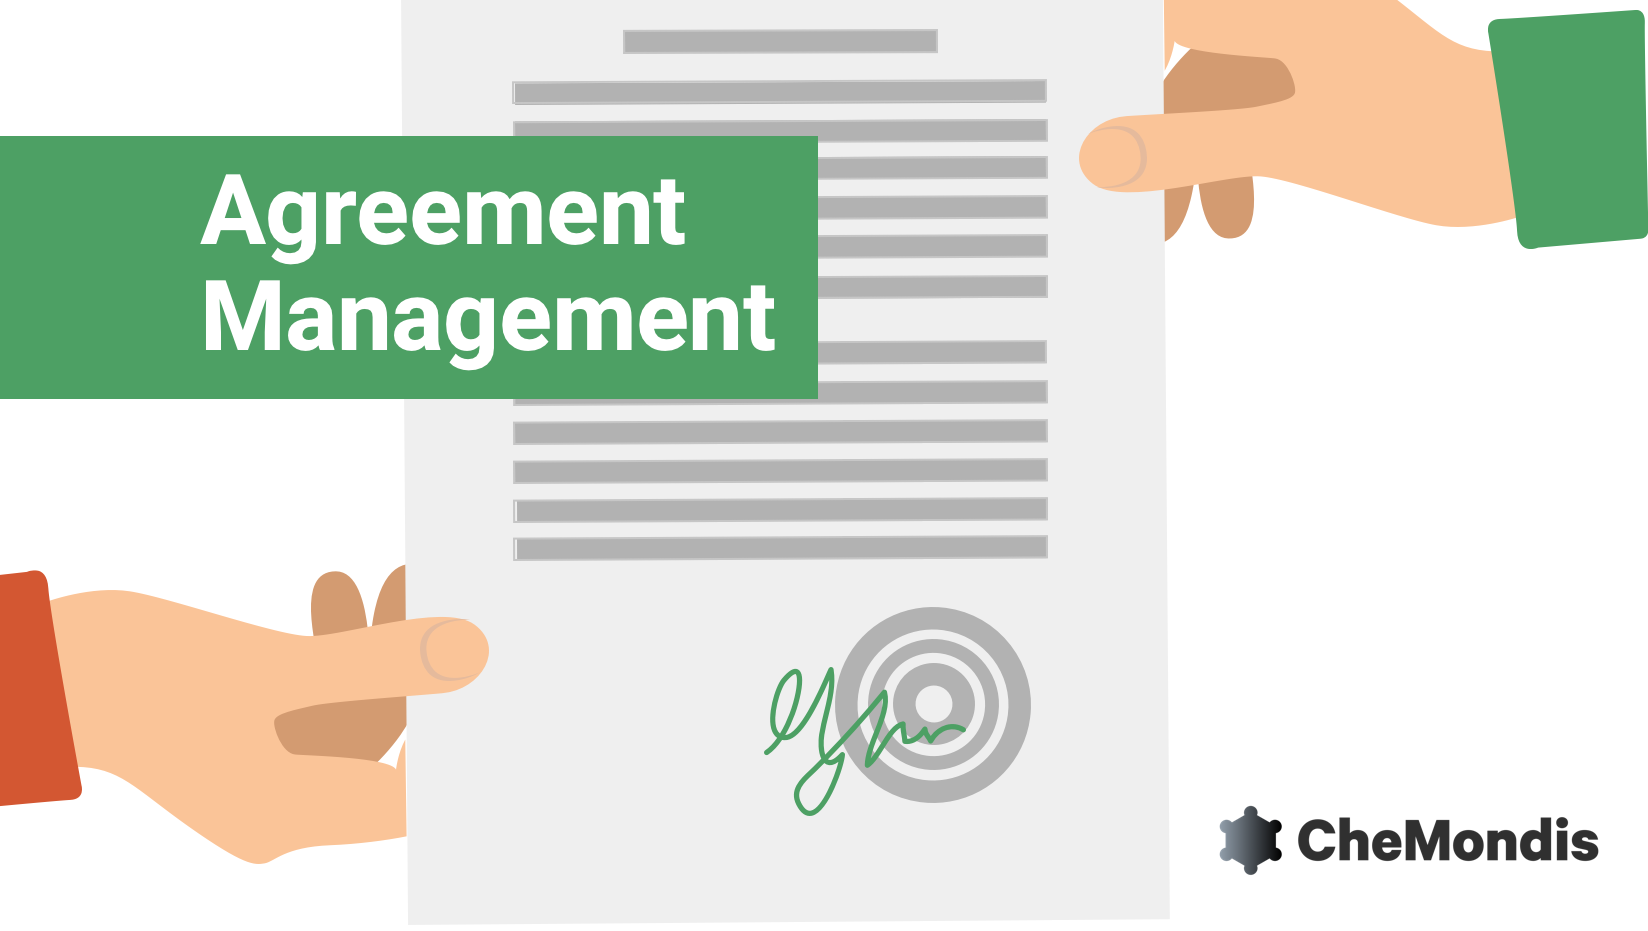 New on CheMondis: Agreement Management